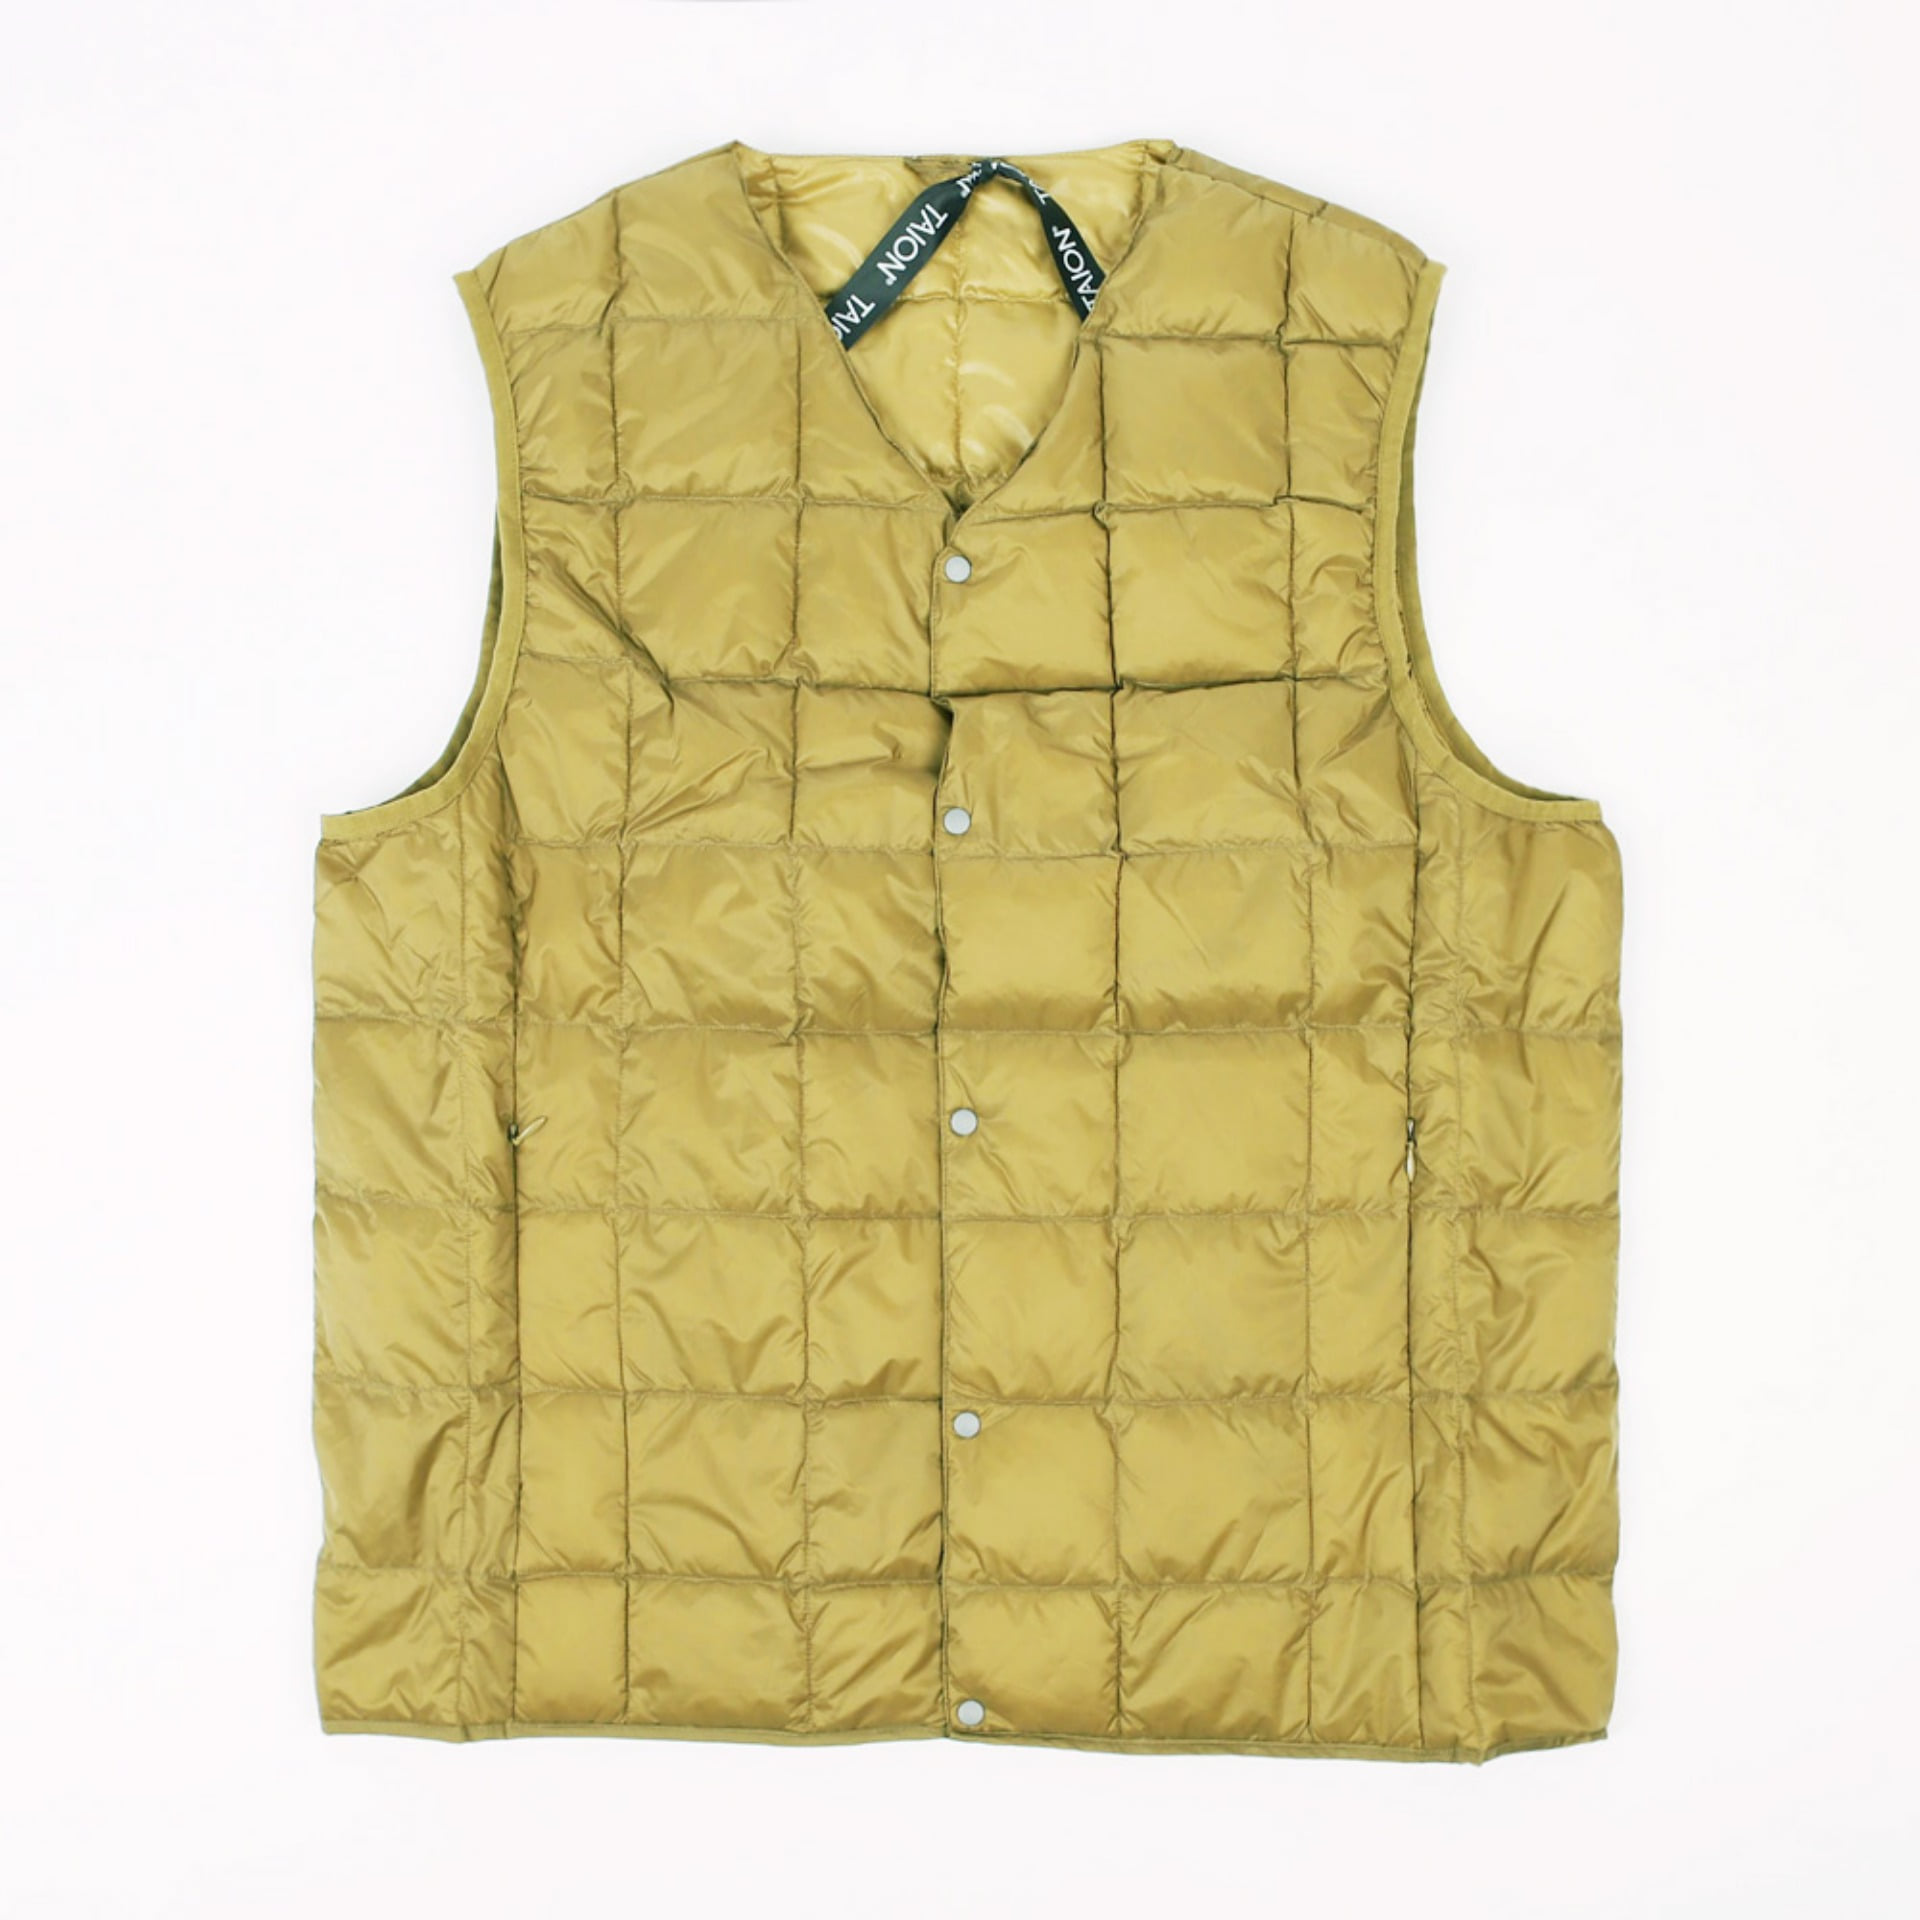 TAION V NECK VEST -001 (BEIGE)